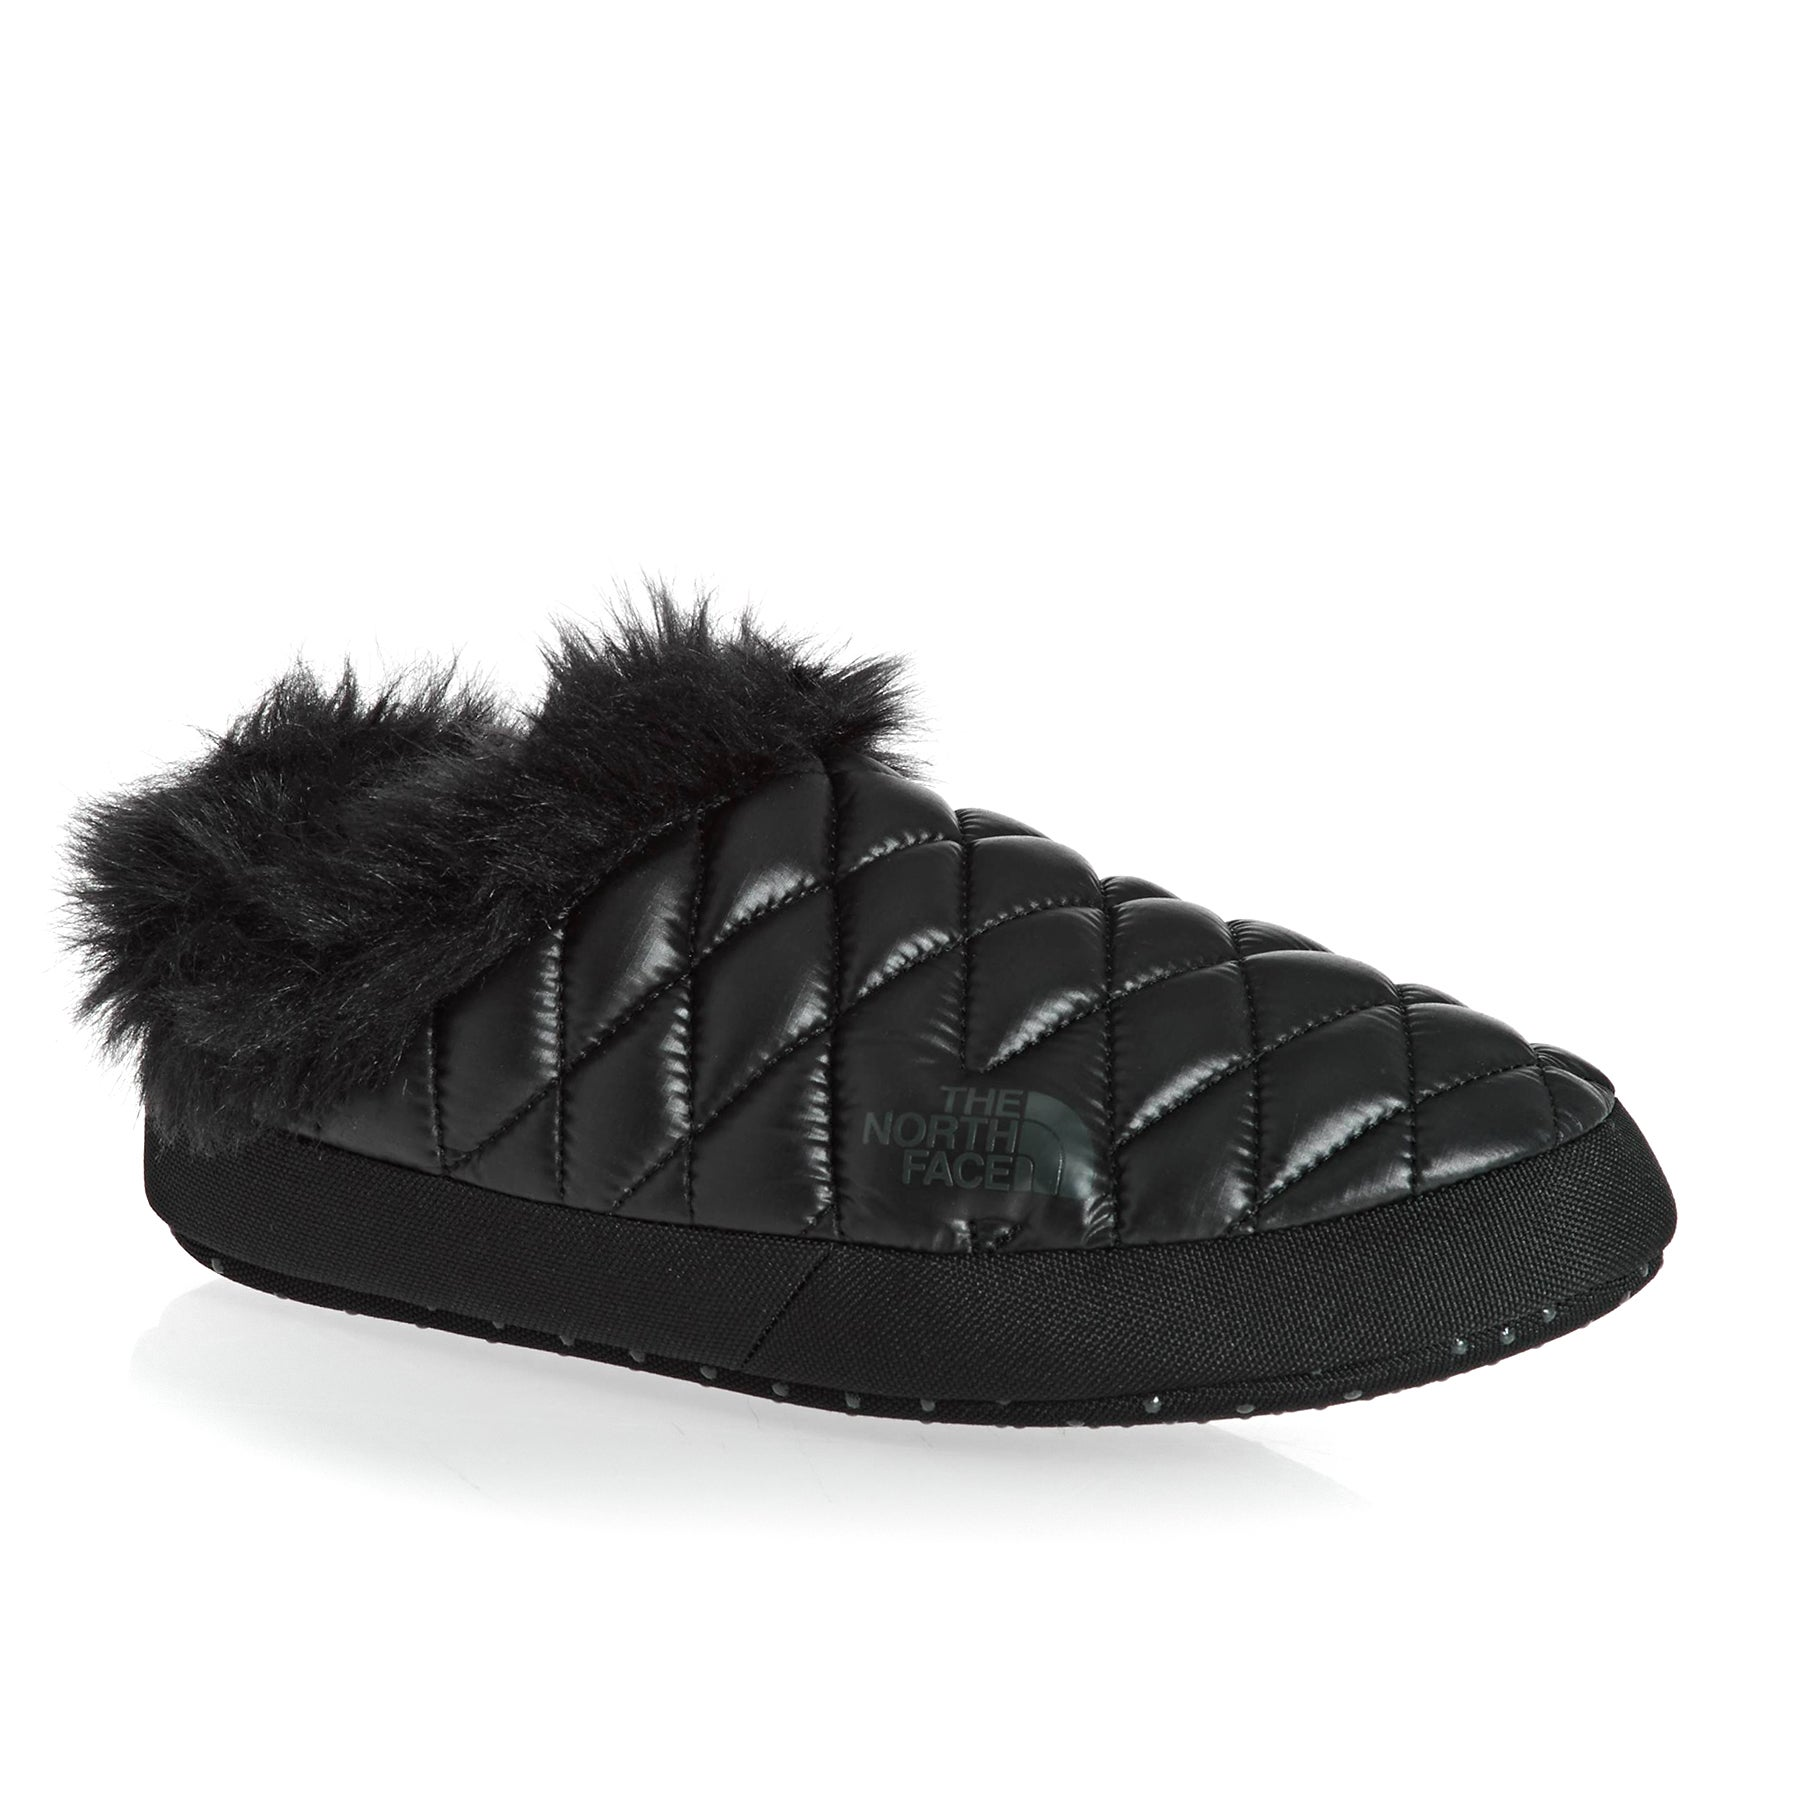 North Face Thermoball Tent Mule Faux Fur IV Womens Slippers - Shiny TNF Black